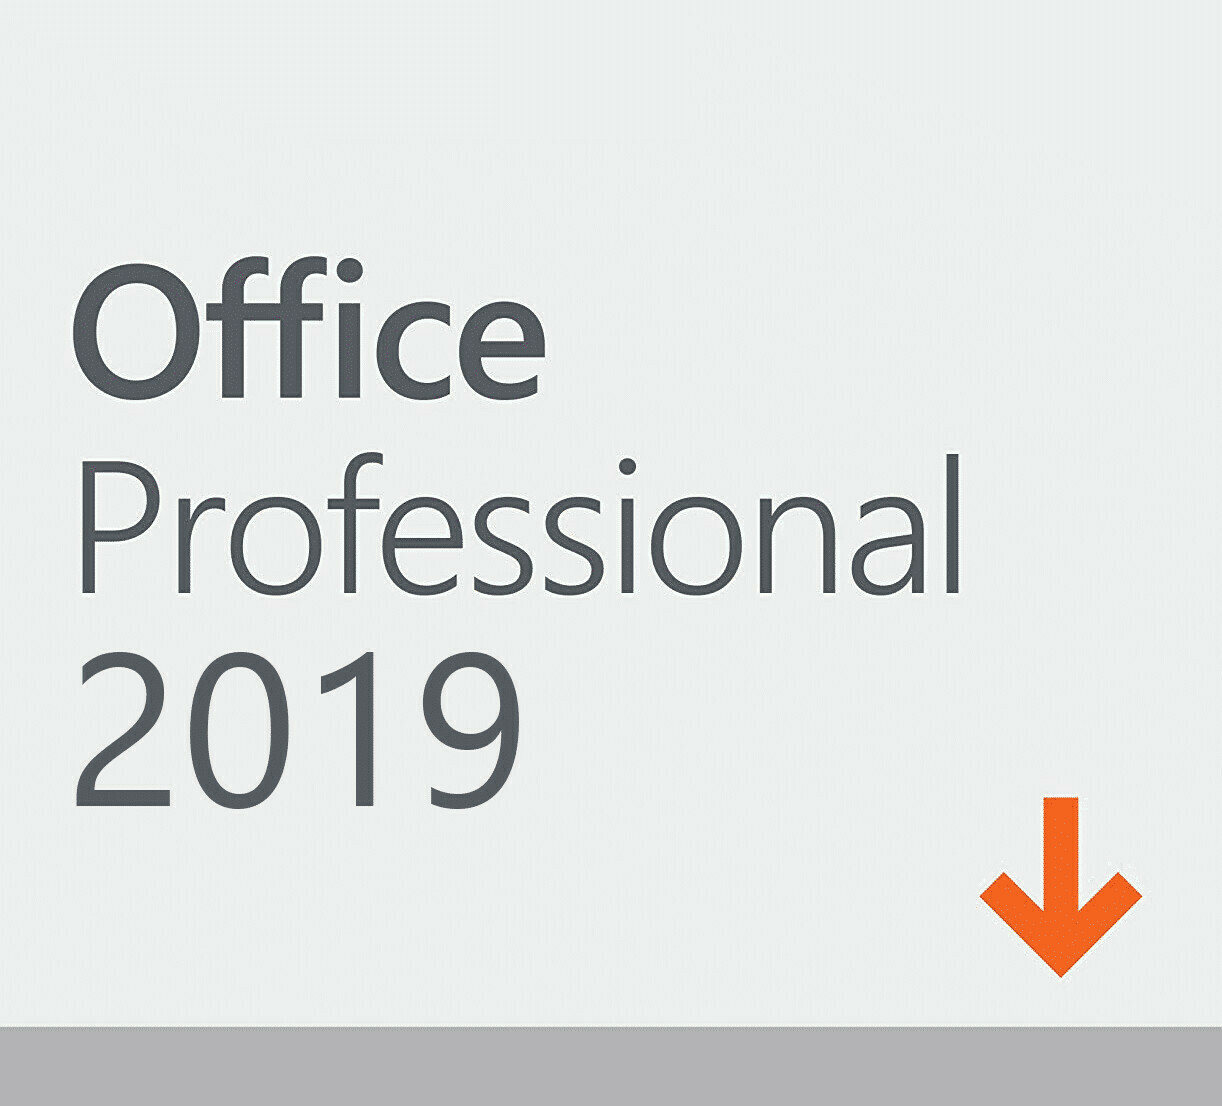 Microsoft Office 2019 Pro Professional Plus Key Digital Key Lifetime Activation 32/64 Bit With Download Link (Windows 10 Only)